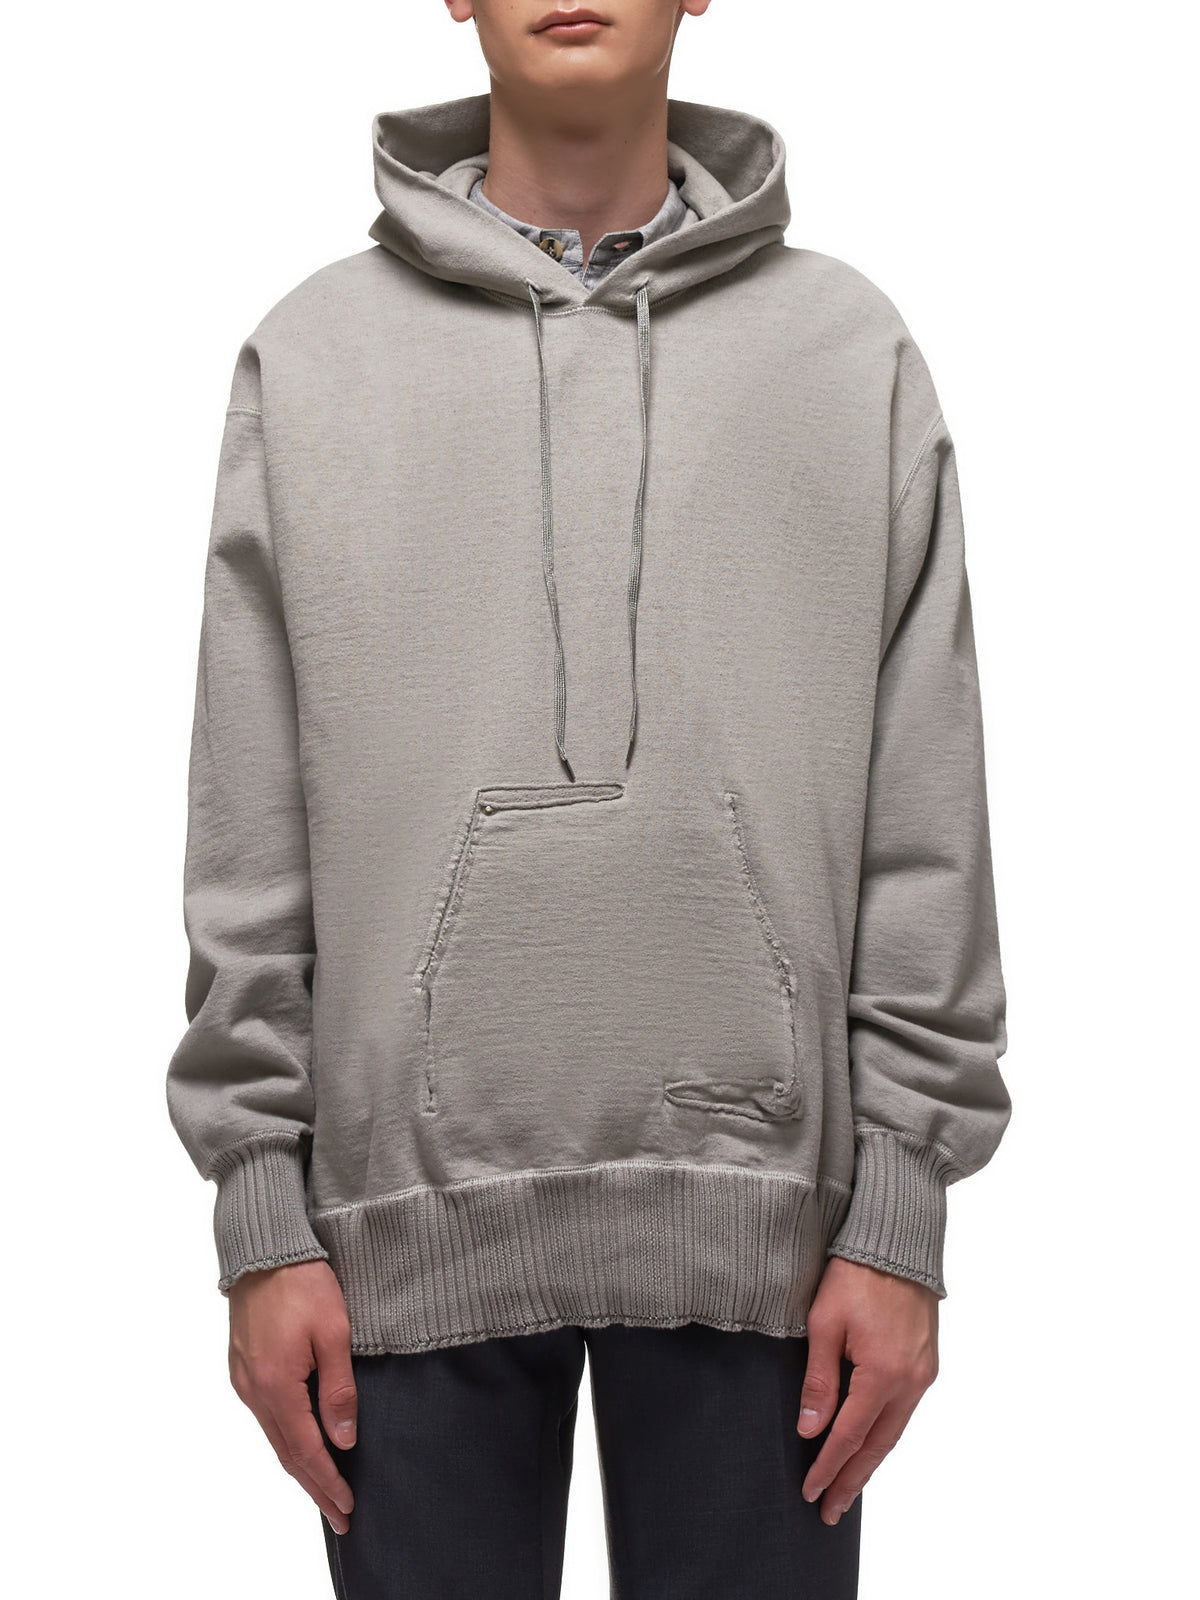 Big Sweater Parka (BIG-SWEAT-PARKA-LIGHT-GRAY)